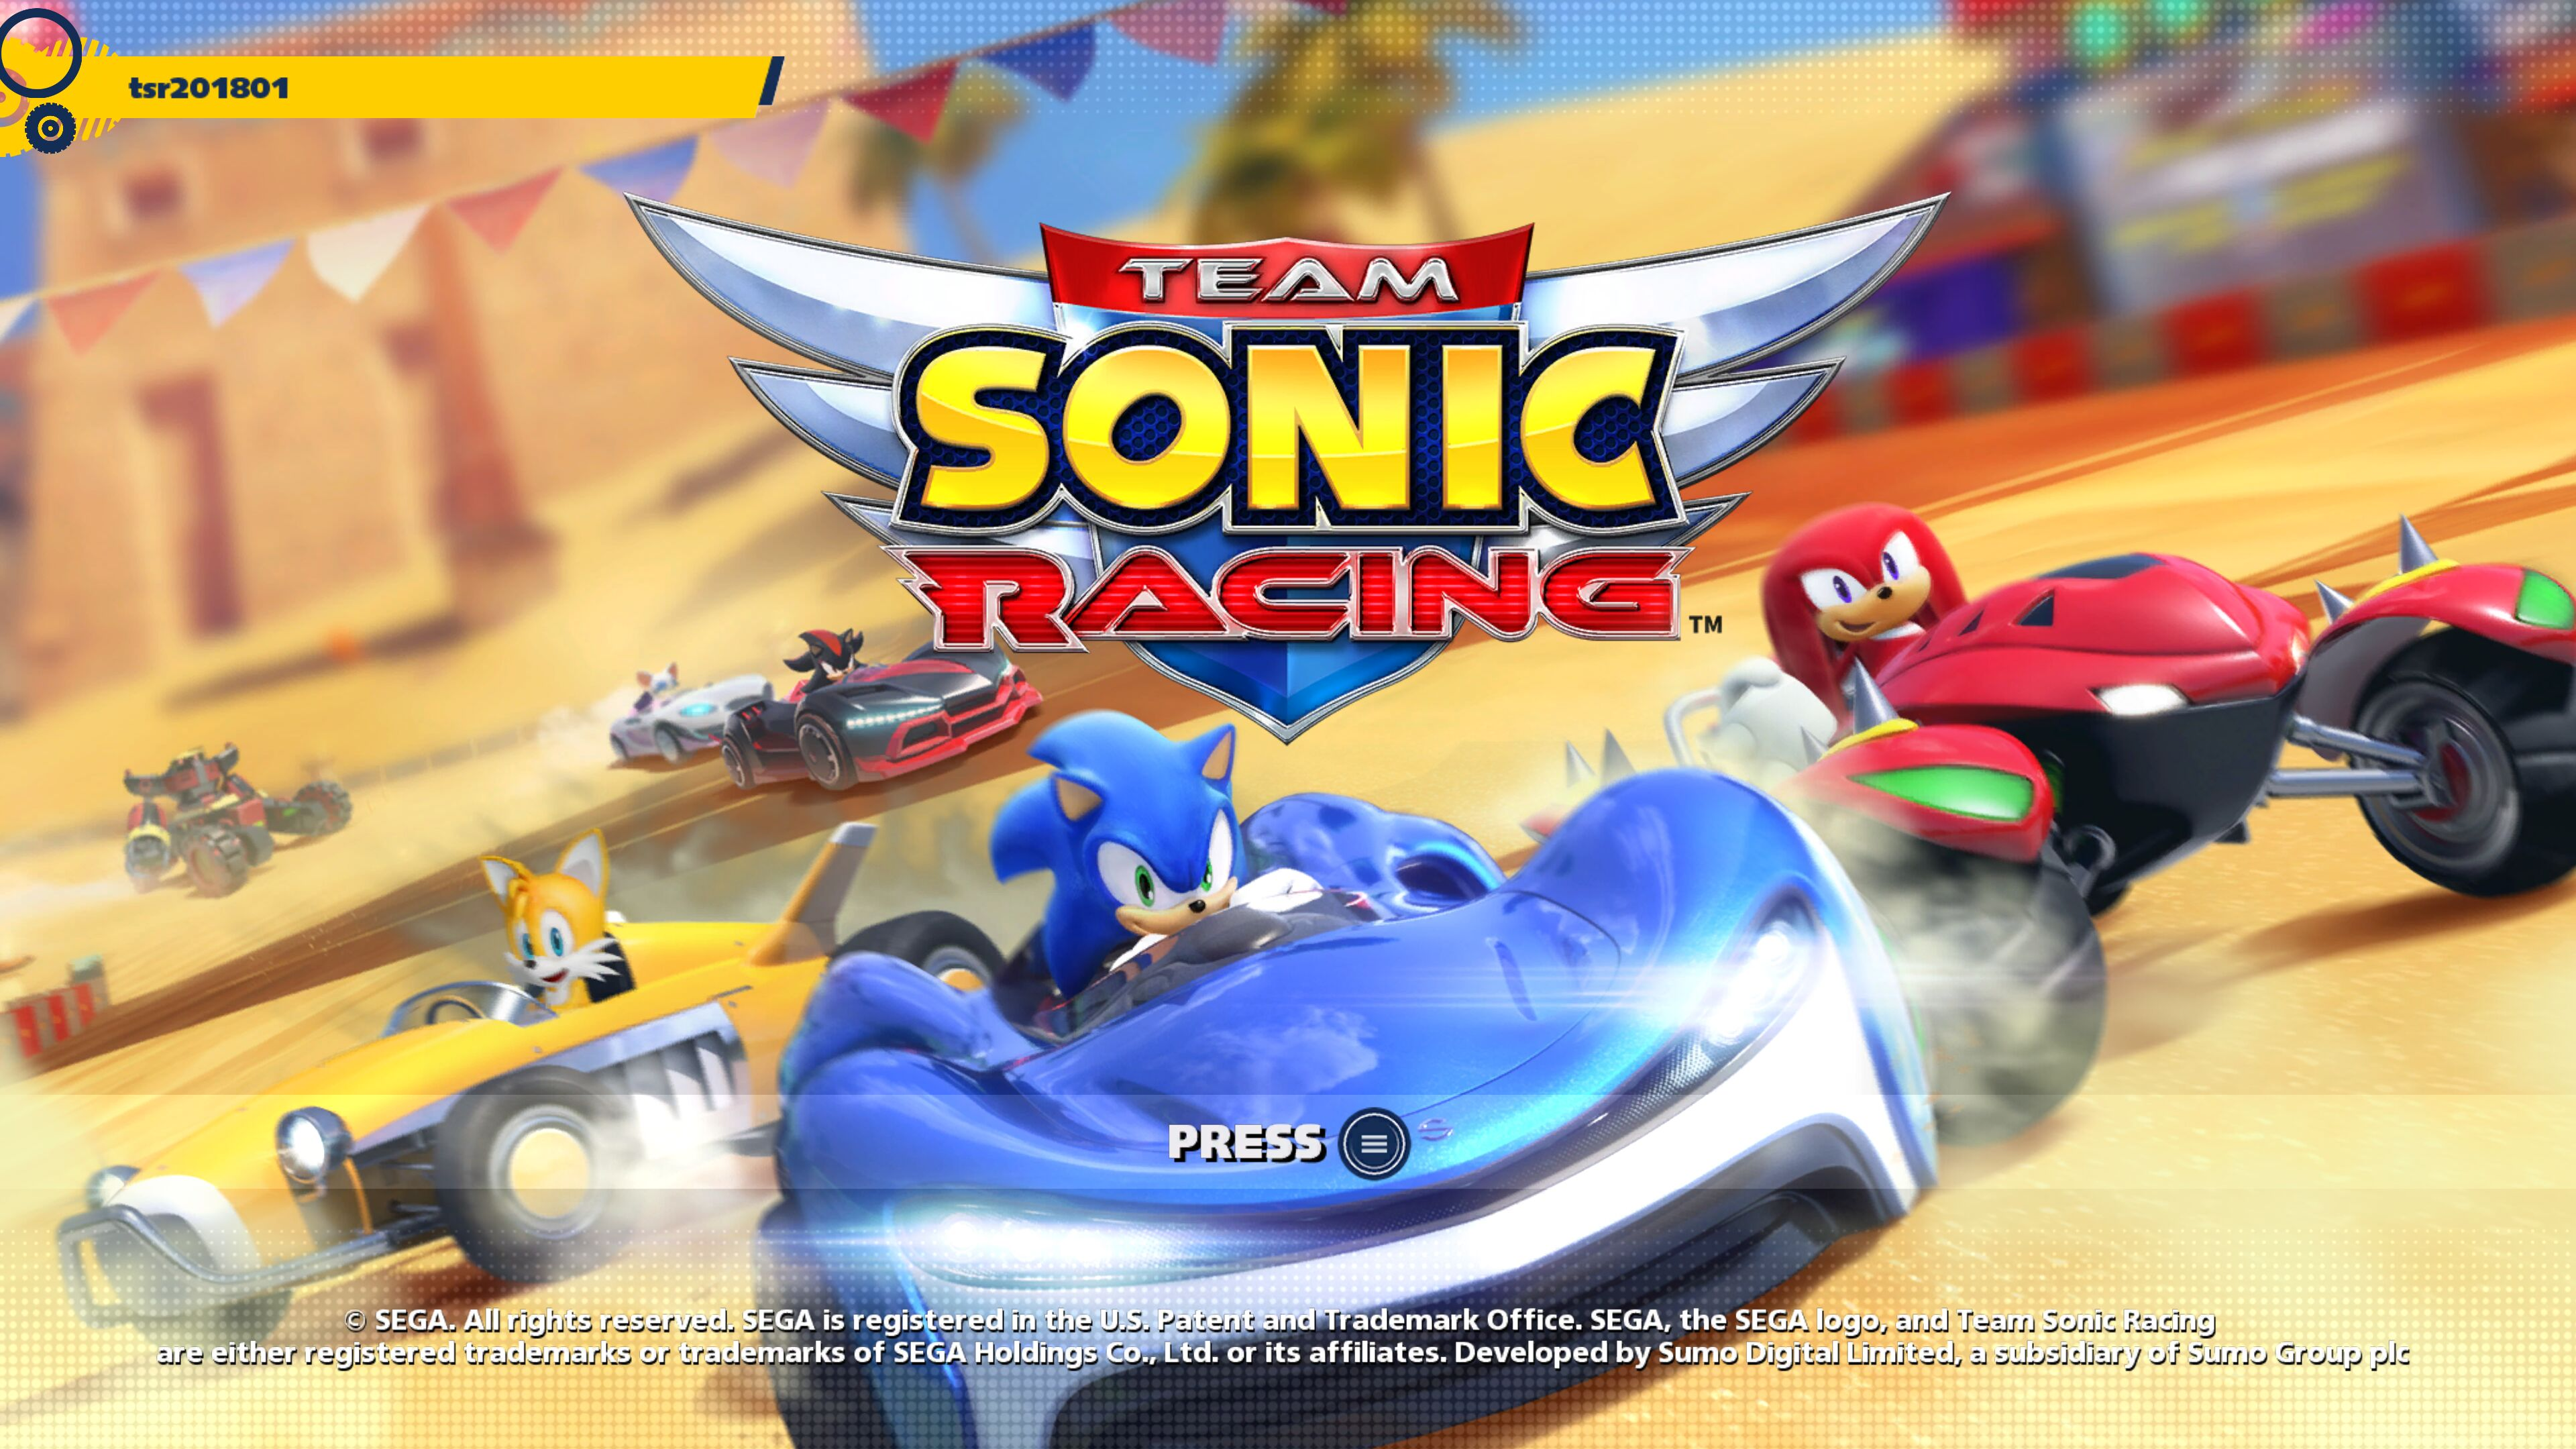 Team Sonic Racing review: Not rolling around at the speed of sound